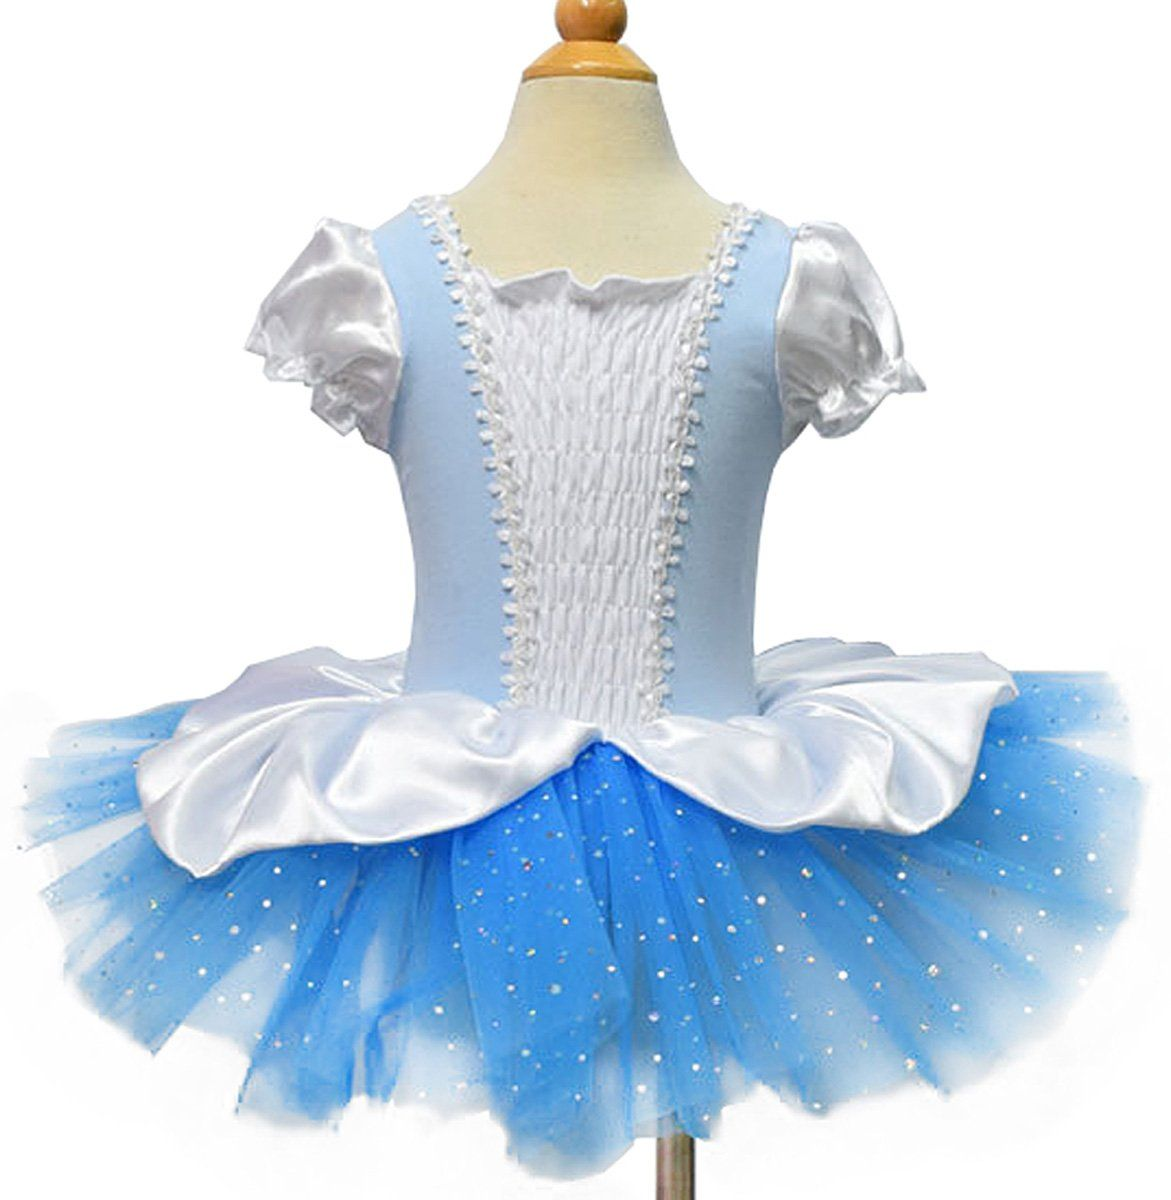 46d82a58e Moonight Girls Cinderella Short Sleeve Tutu Ballet Party Dresses ...